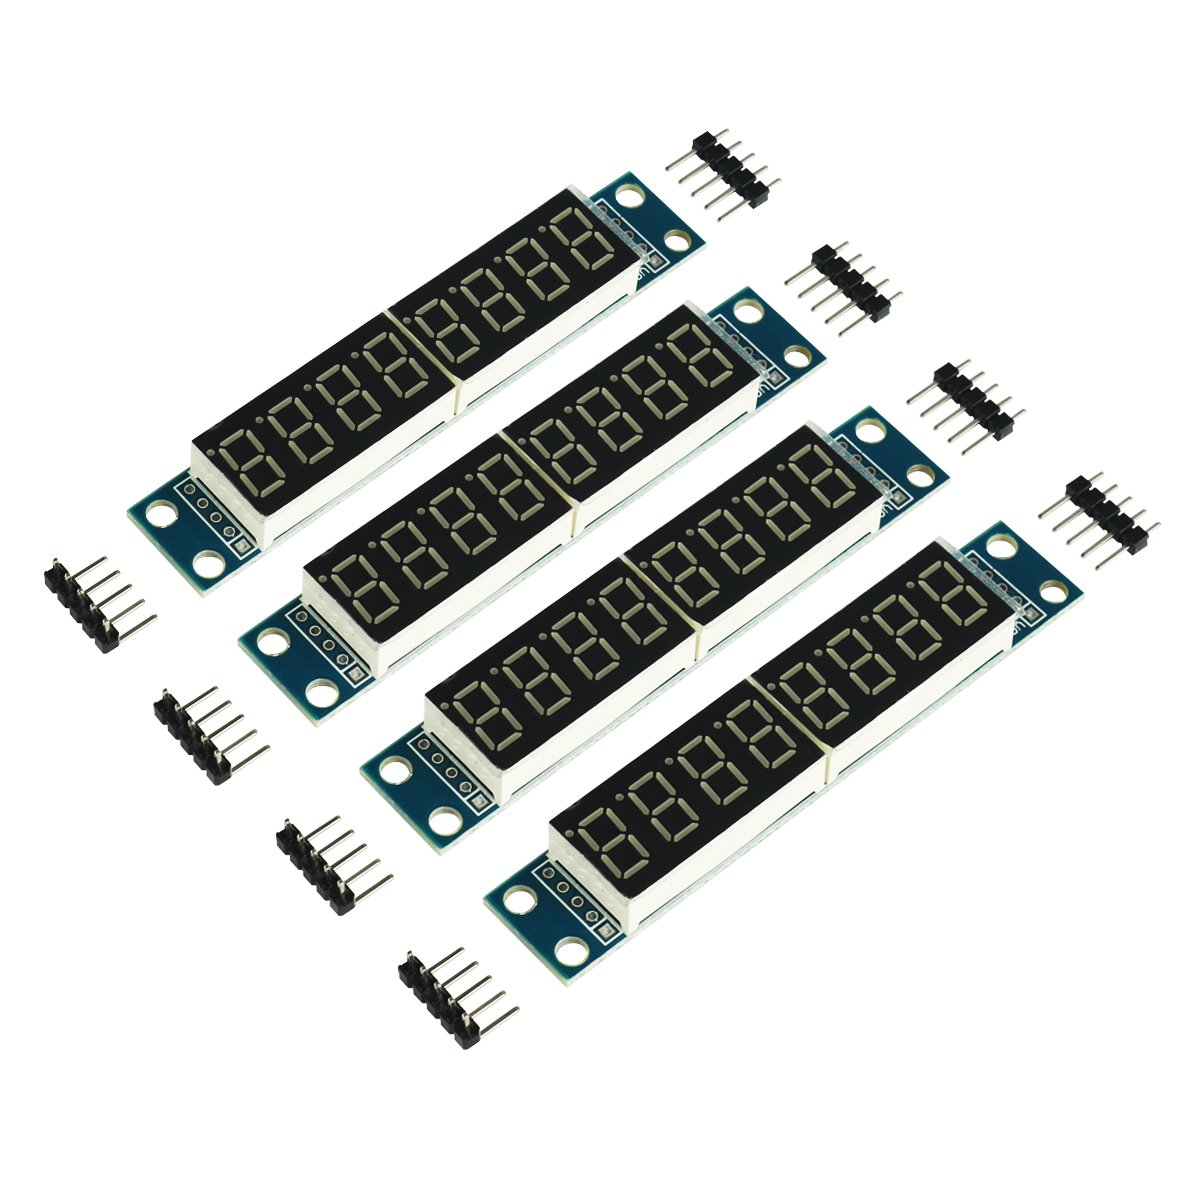 MakerFocus 4pcs 8-Digit 7 Segment Module MAX7219 8 Bit Digital Segment Tube LED Display Module Supports Cascade Eight Bit Serial 3 IO Ports for Arduino MCU/51/AVR/STM32